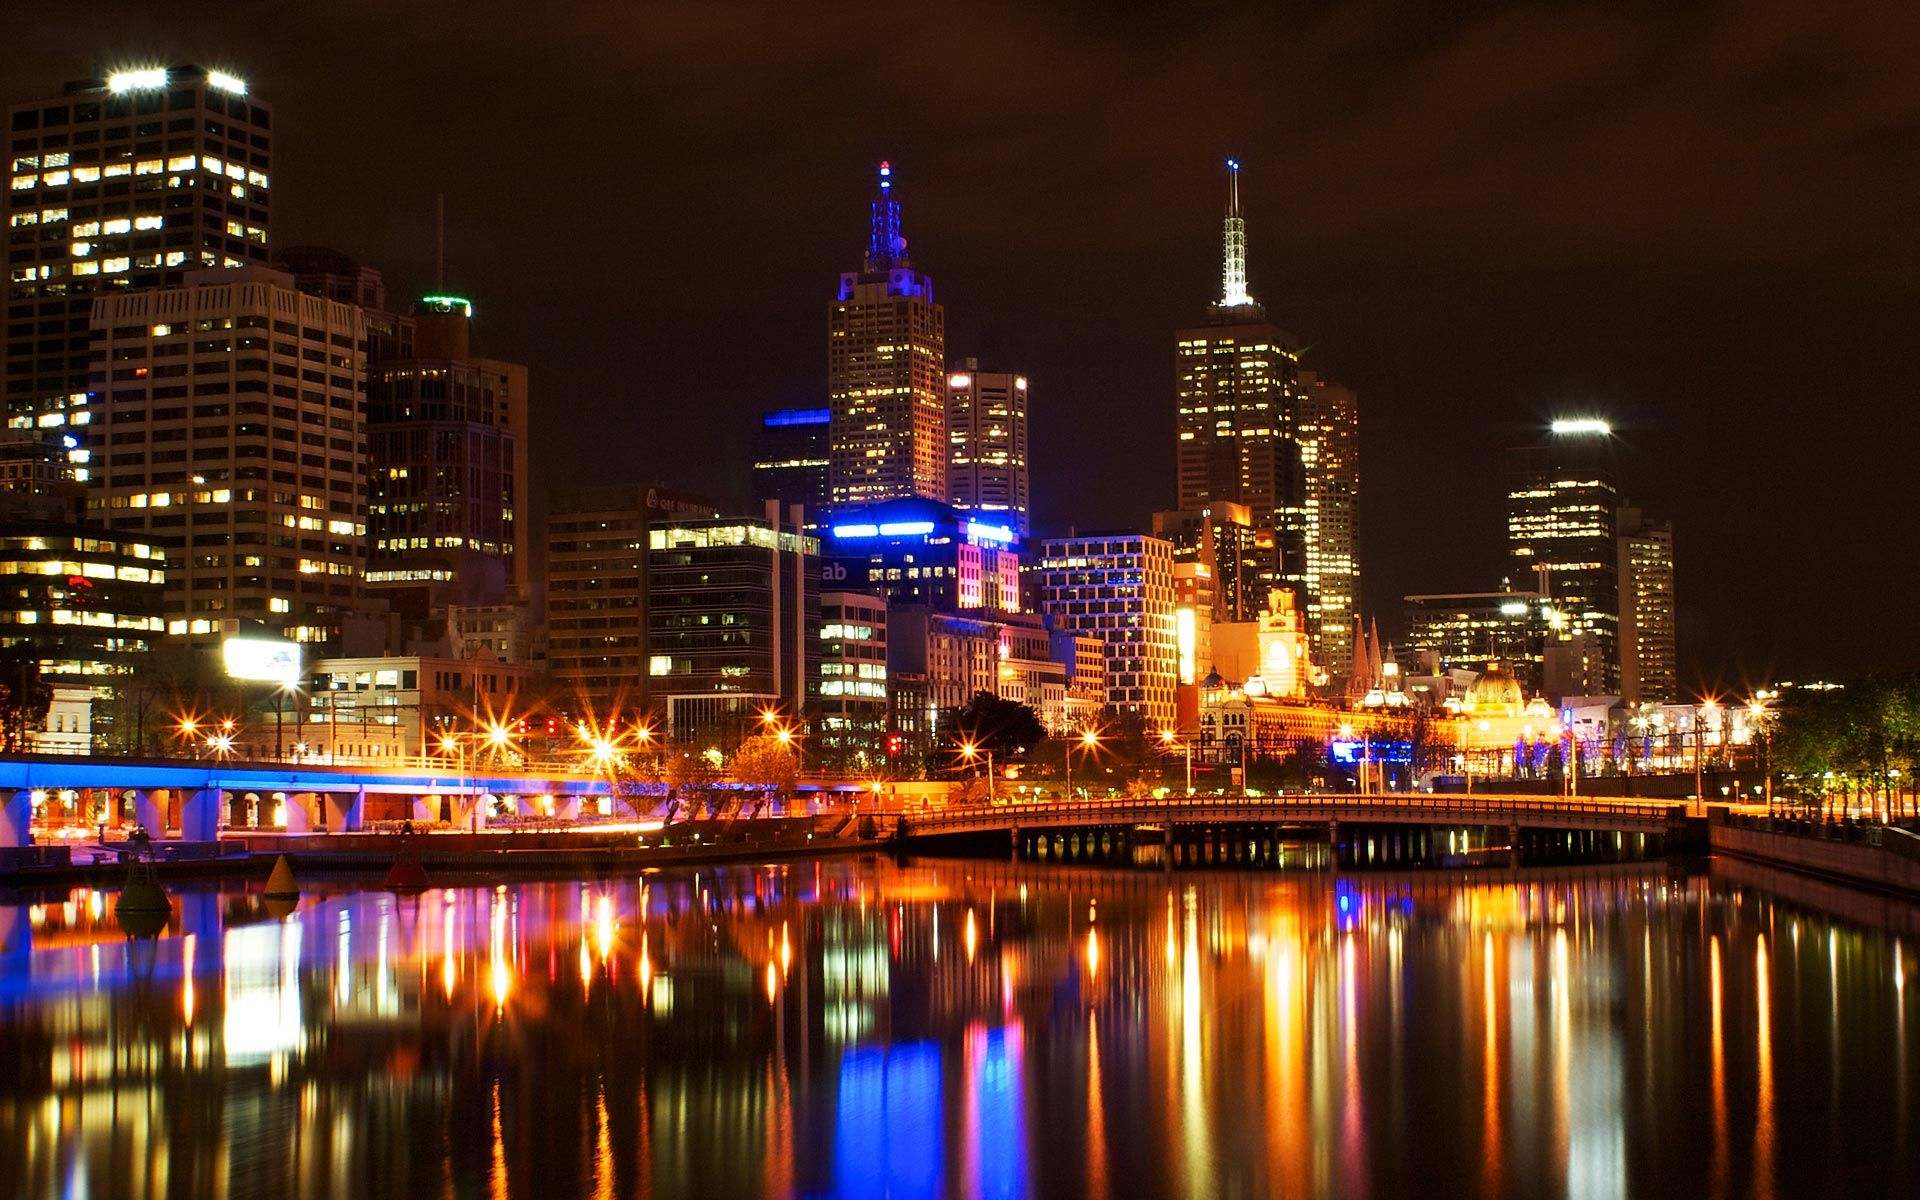 Melbourne city night